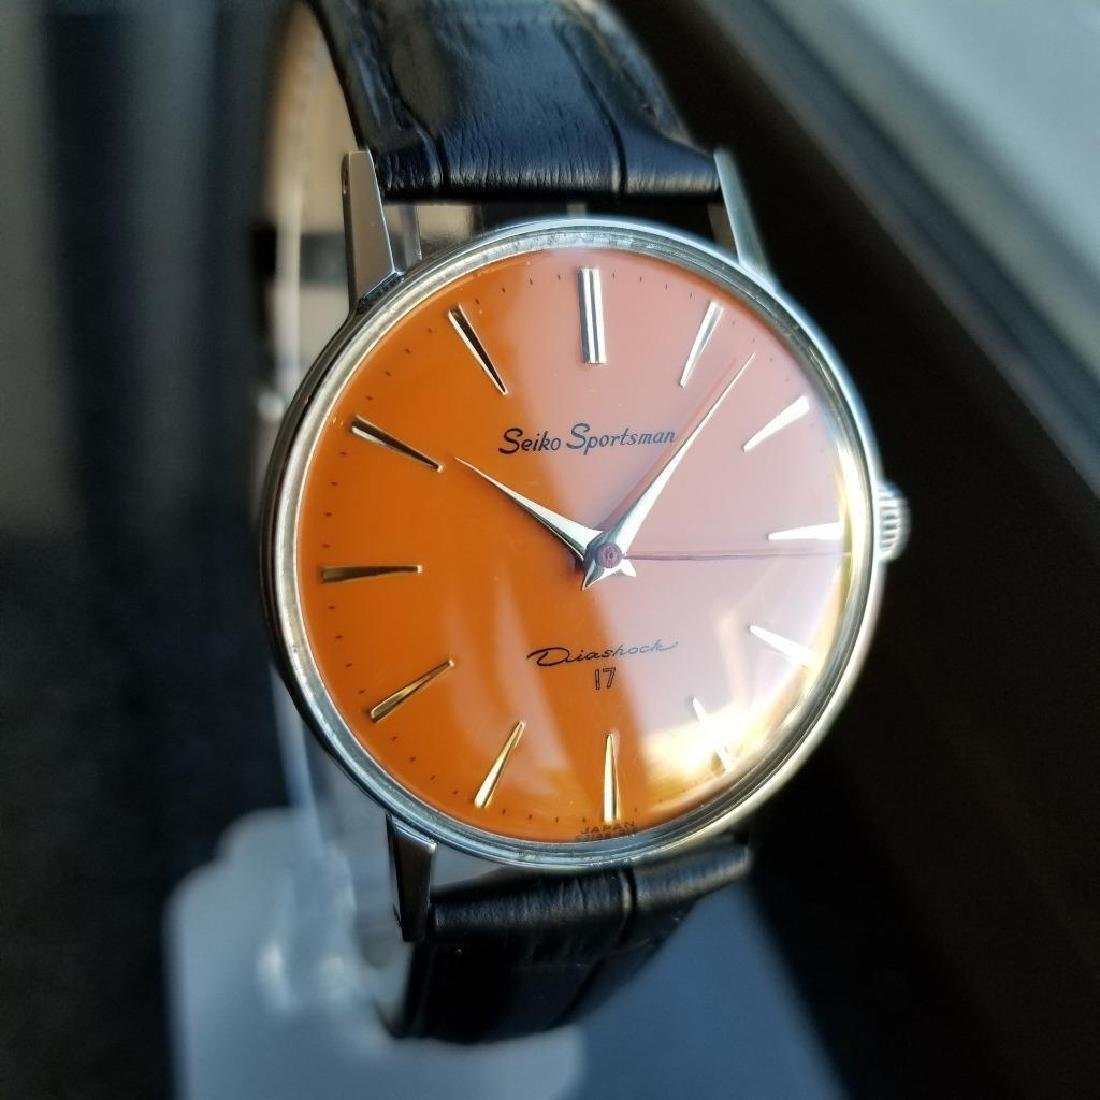 Seiko Vintage Sportsman 1960s Manual Wind 33mm Men's - 6